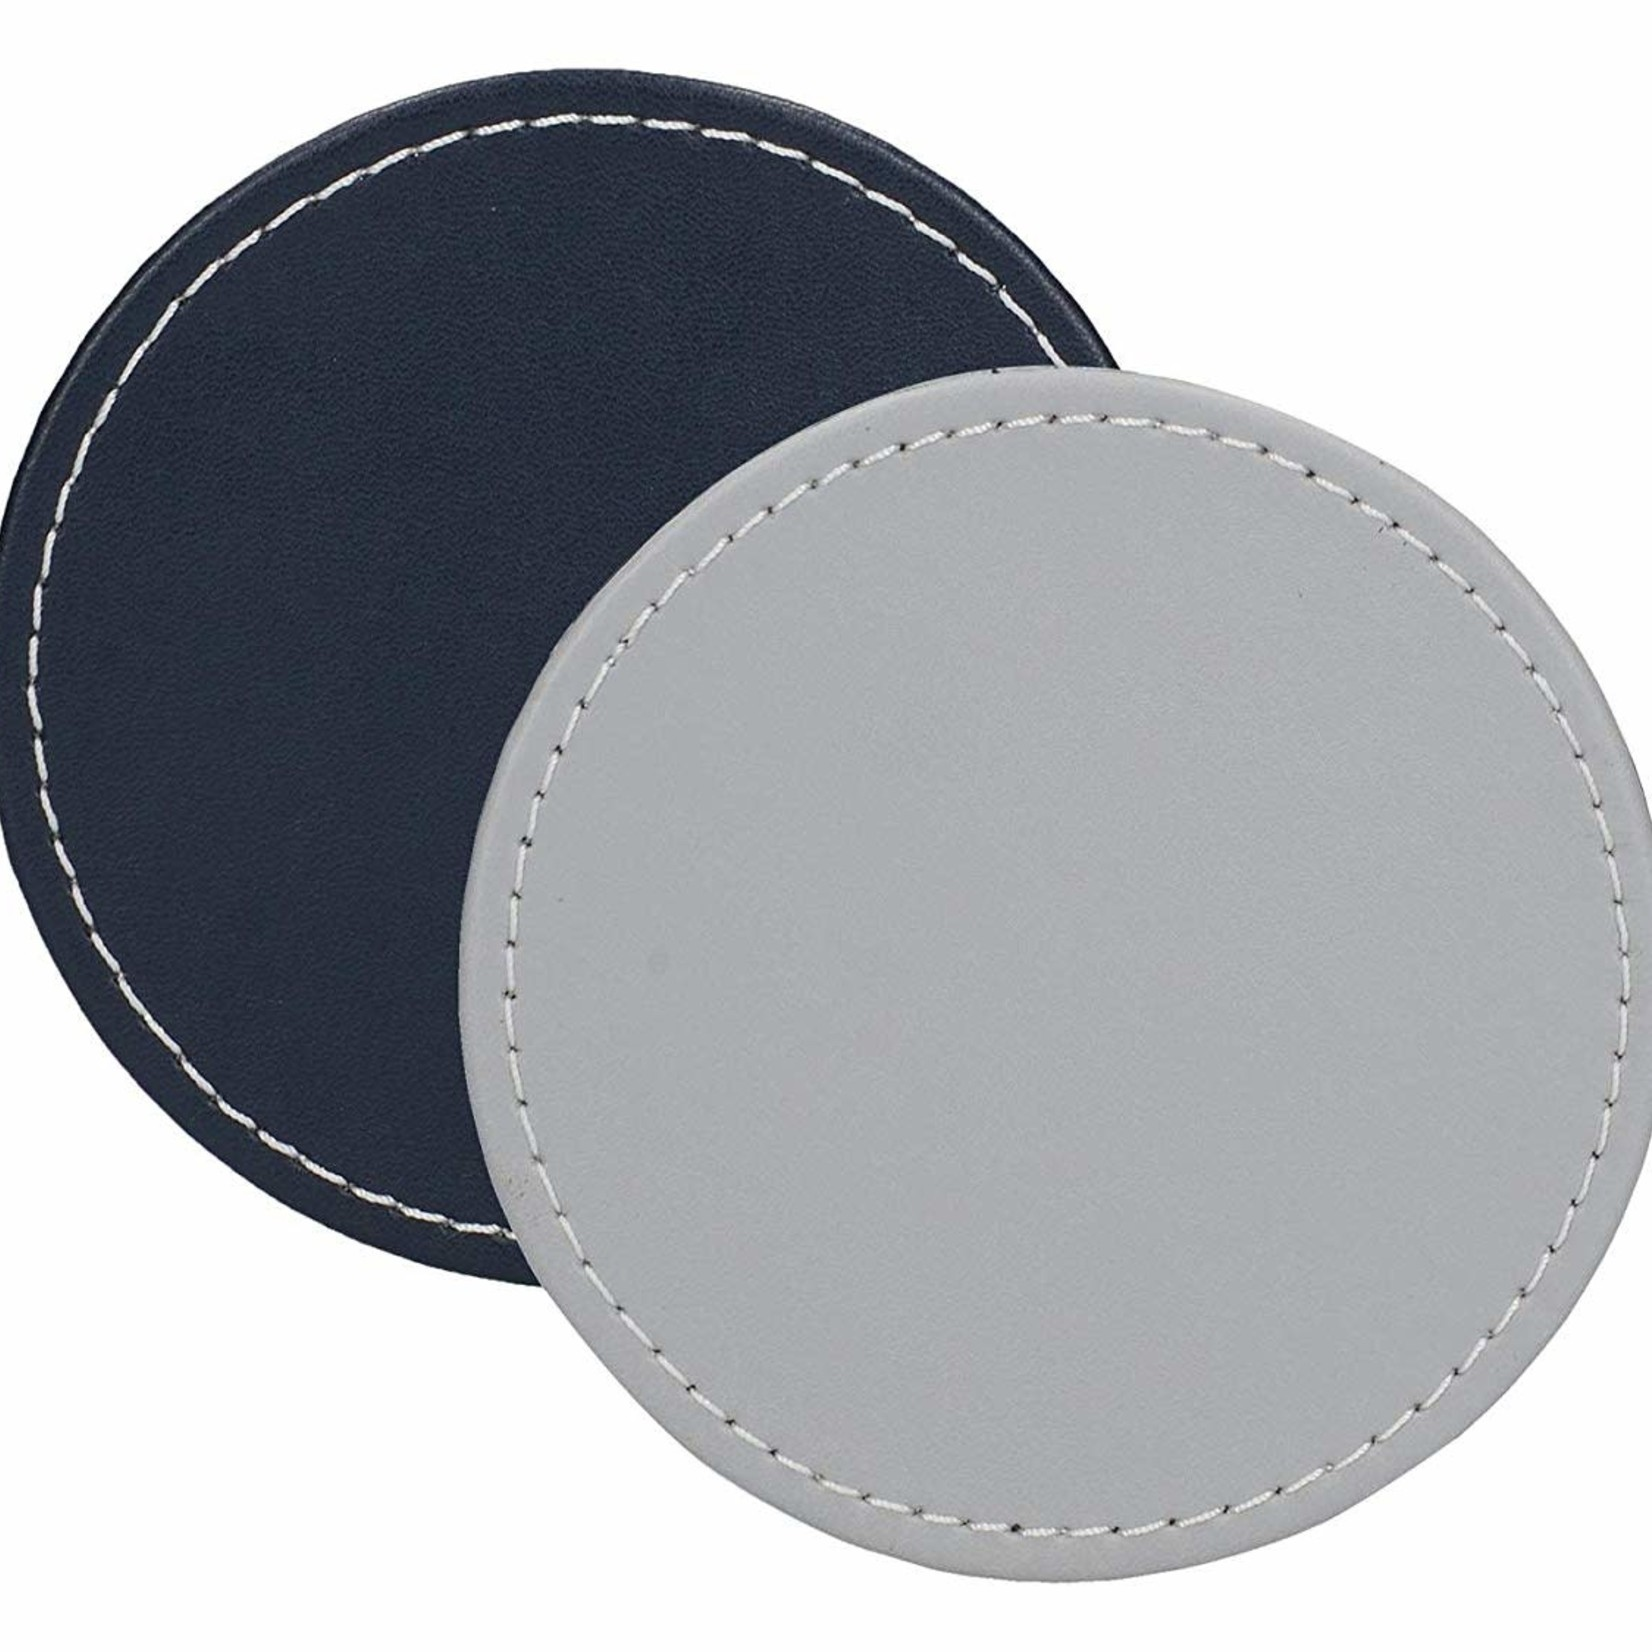 Kitchen Craft CREATIVE TOPS PREMIUM ROUND FAUX LEATHER PACK 4 COASTERS GREY